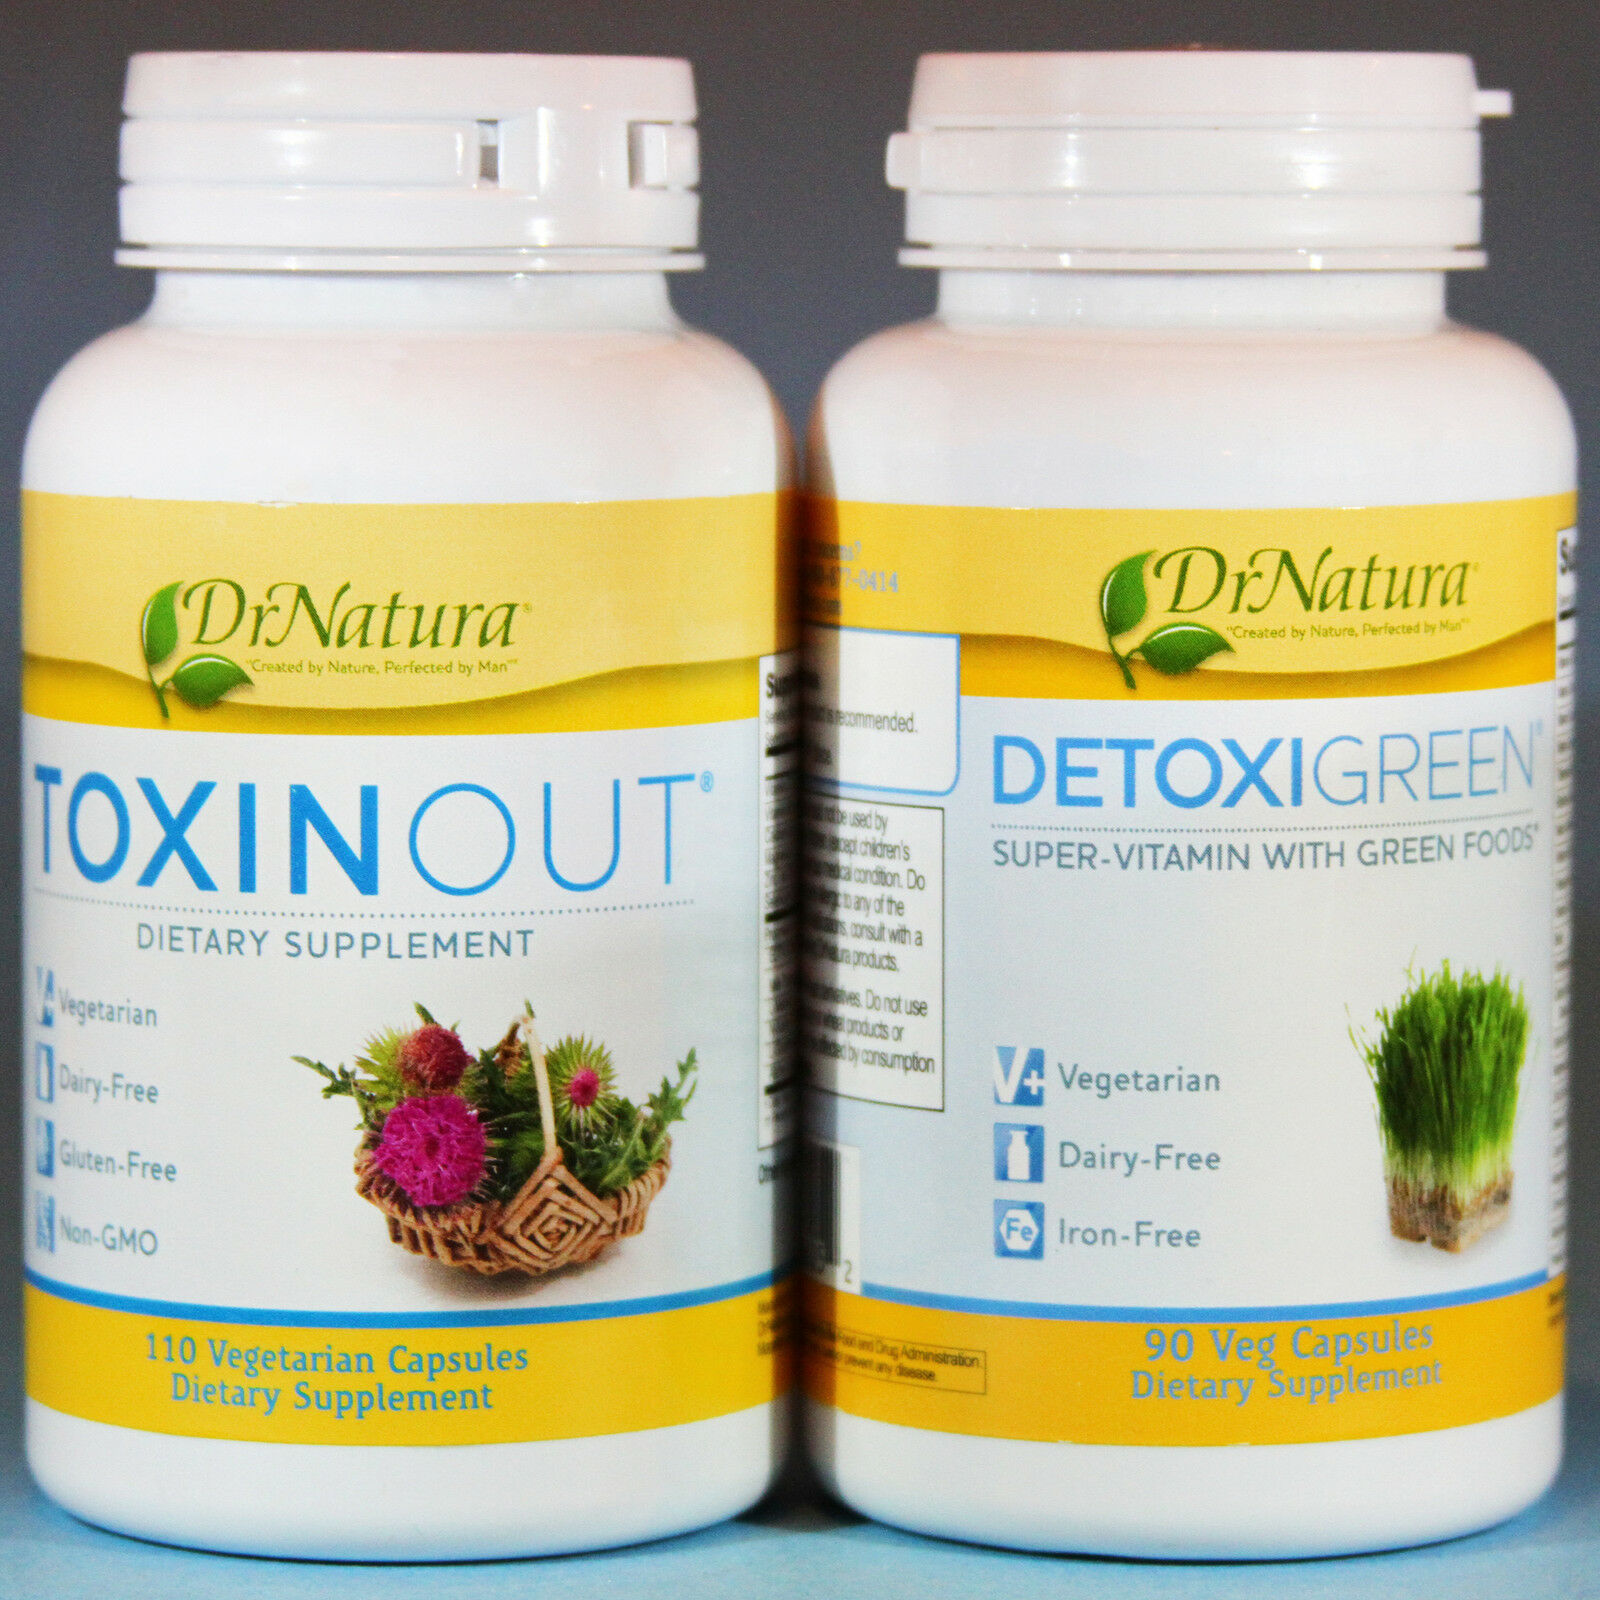 Detoxigreen & Toxinout Combo By Dr Natura Colonix Green Foods Vitamin Dairy Free